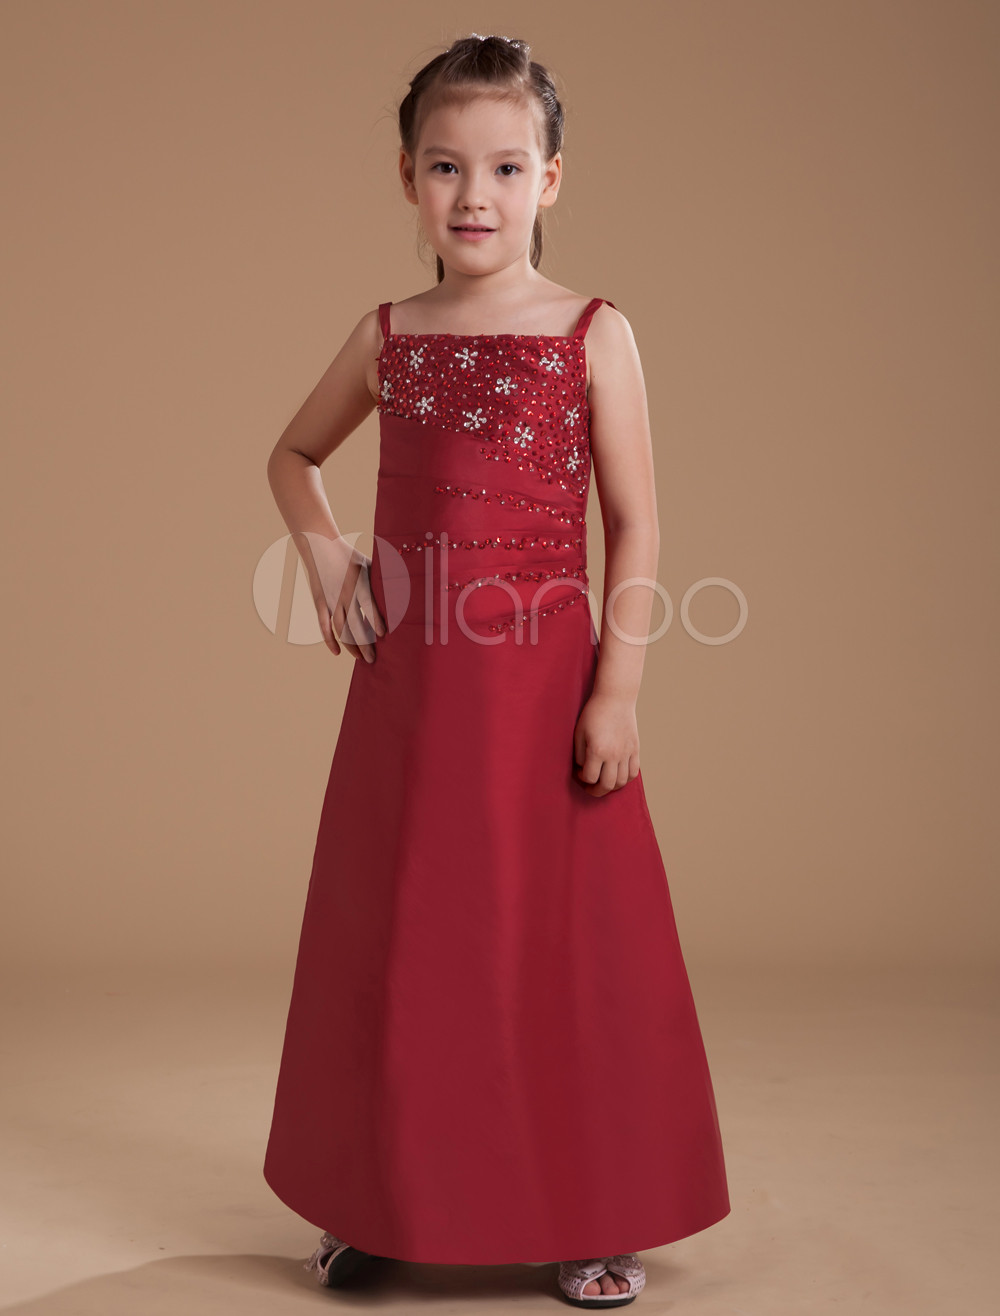 Bridesmaids dresses gorgeous wine red taffeta thin shoulder straps floor length junior bridesmaid dress ombrellifo Images